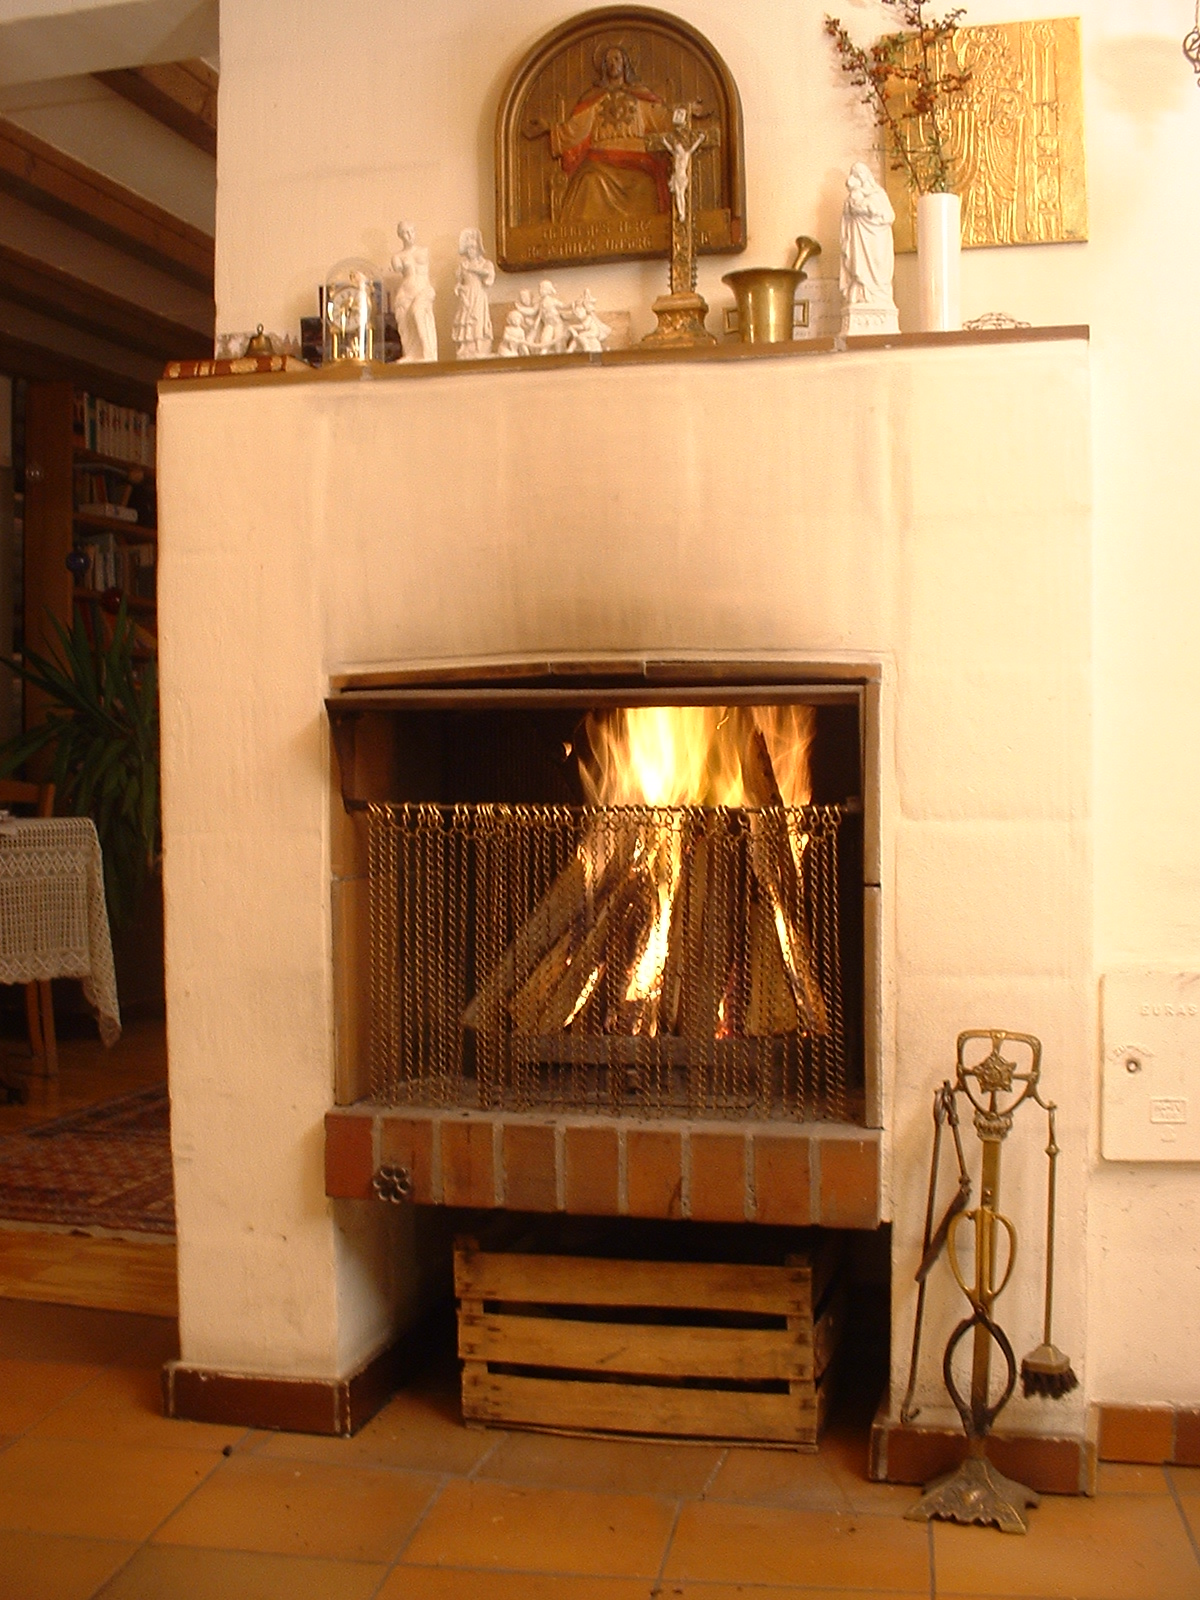 Fireplace - Wikipedia